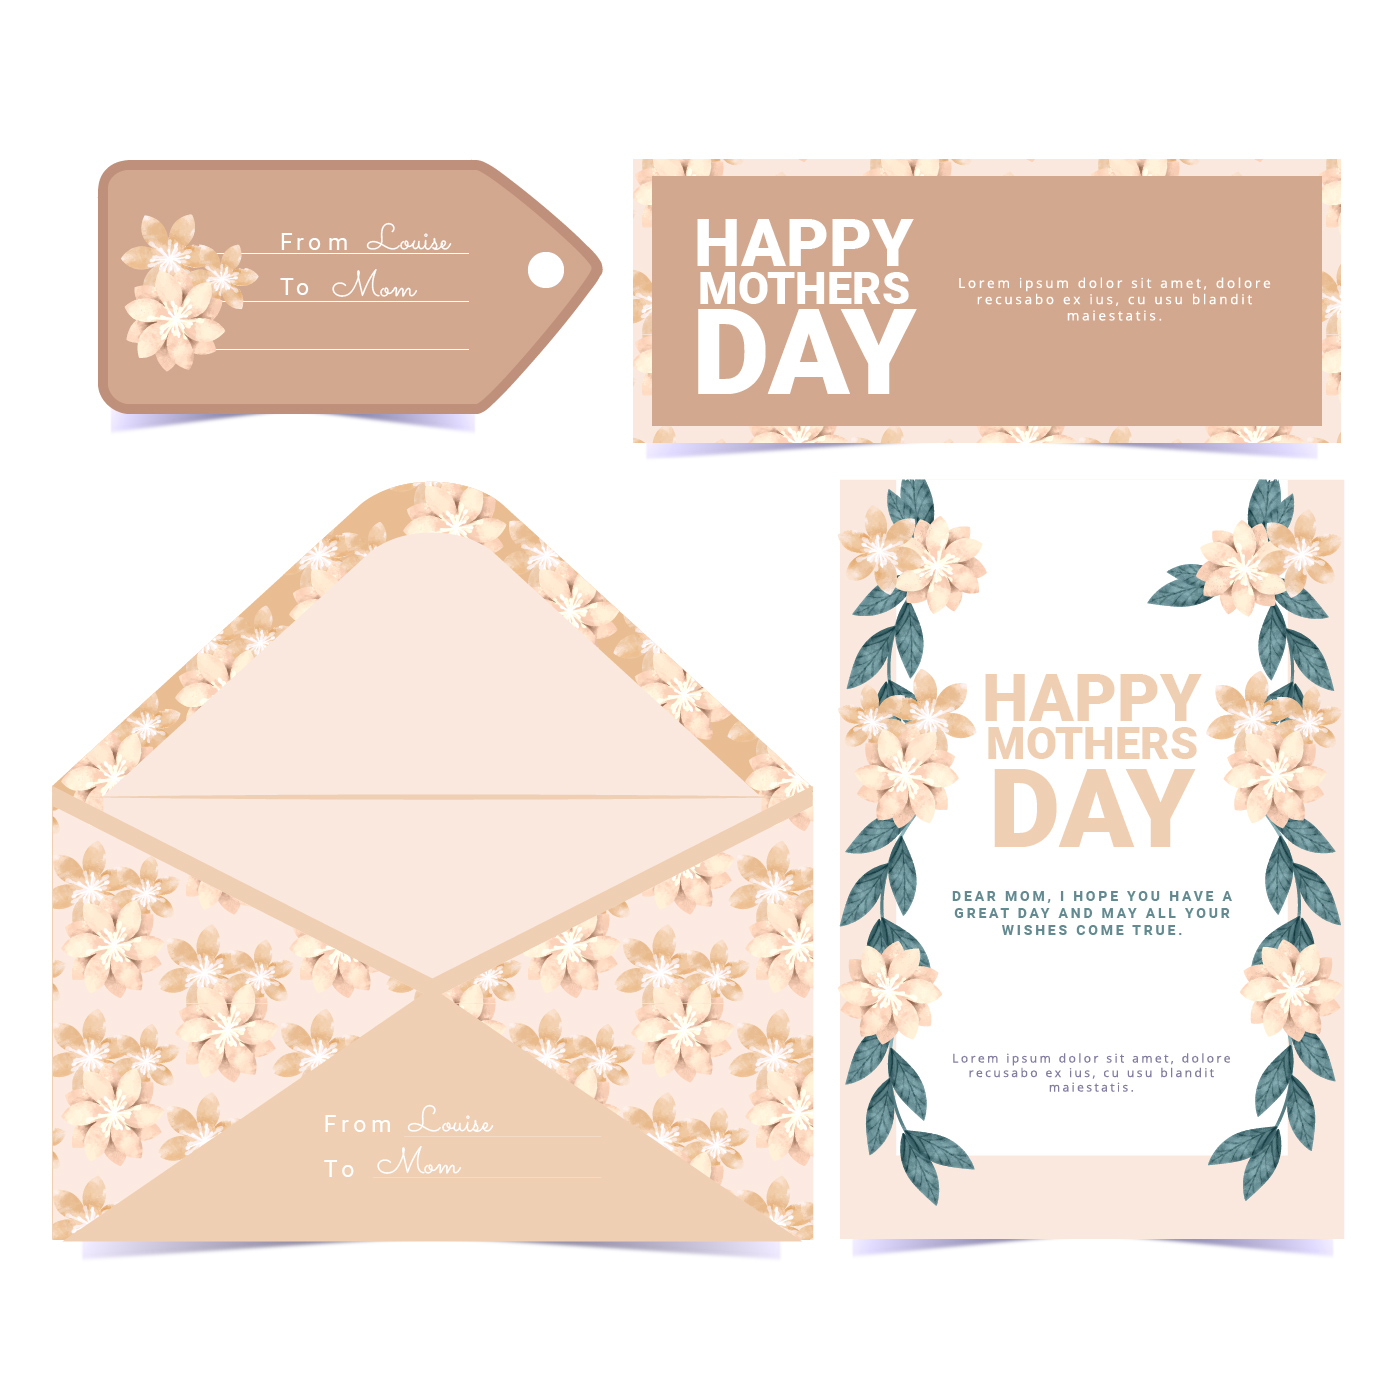 Vector floral mothers day greeting card download free vector art vector floral mothers day greeting card download free vector art stock graphics images m4hsunfo